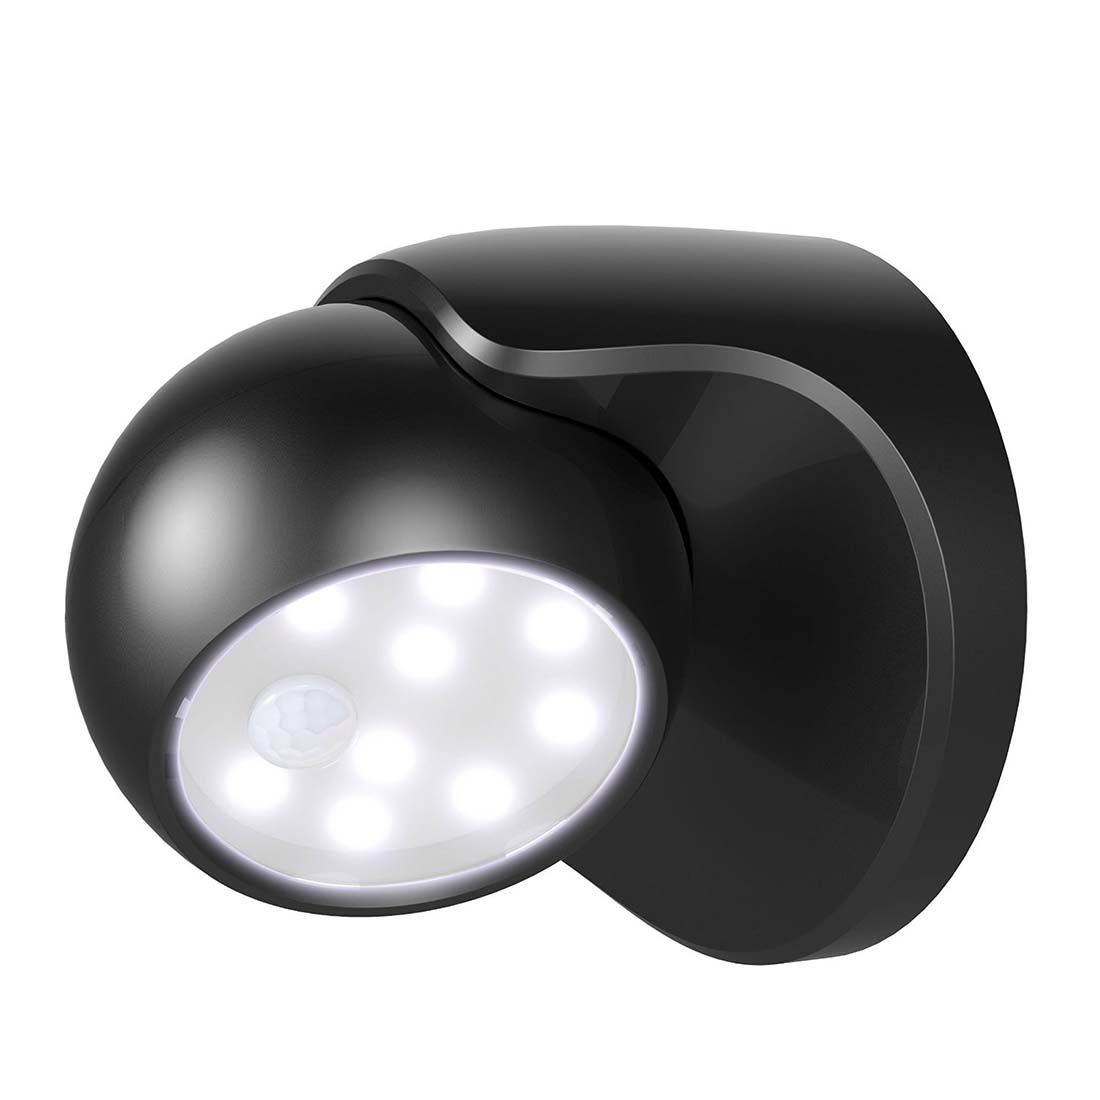 battery powered motion sensor detector led night lights. Black Bedroom Furniture Sets. Home Design Ideas